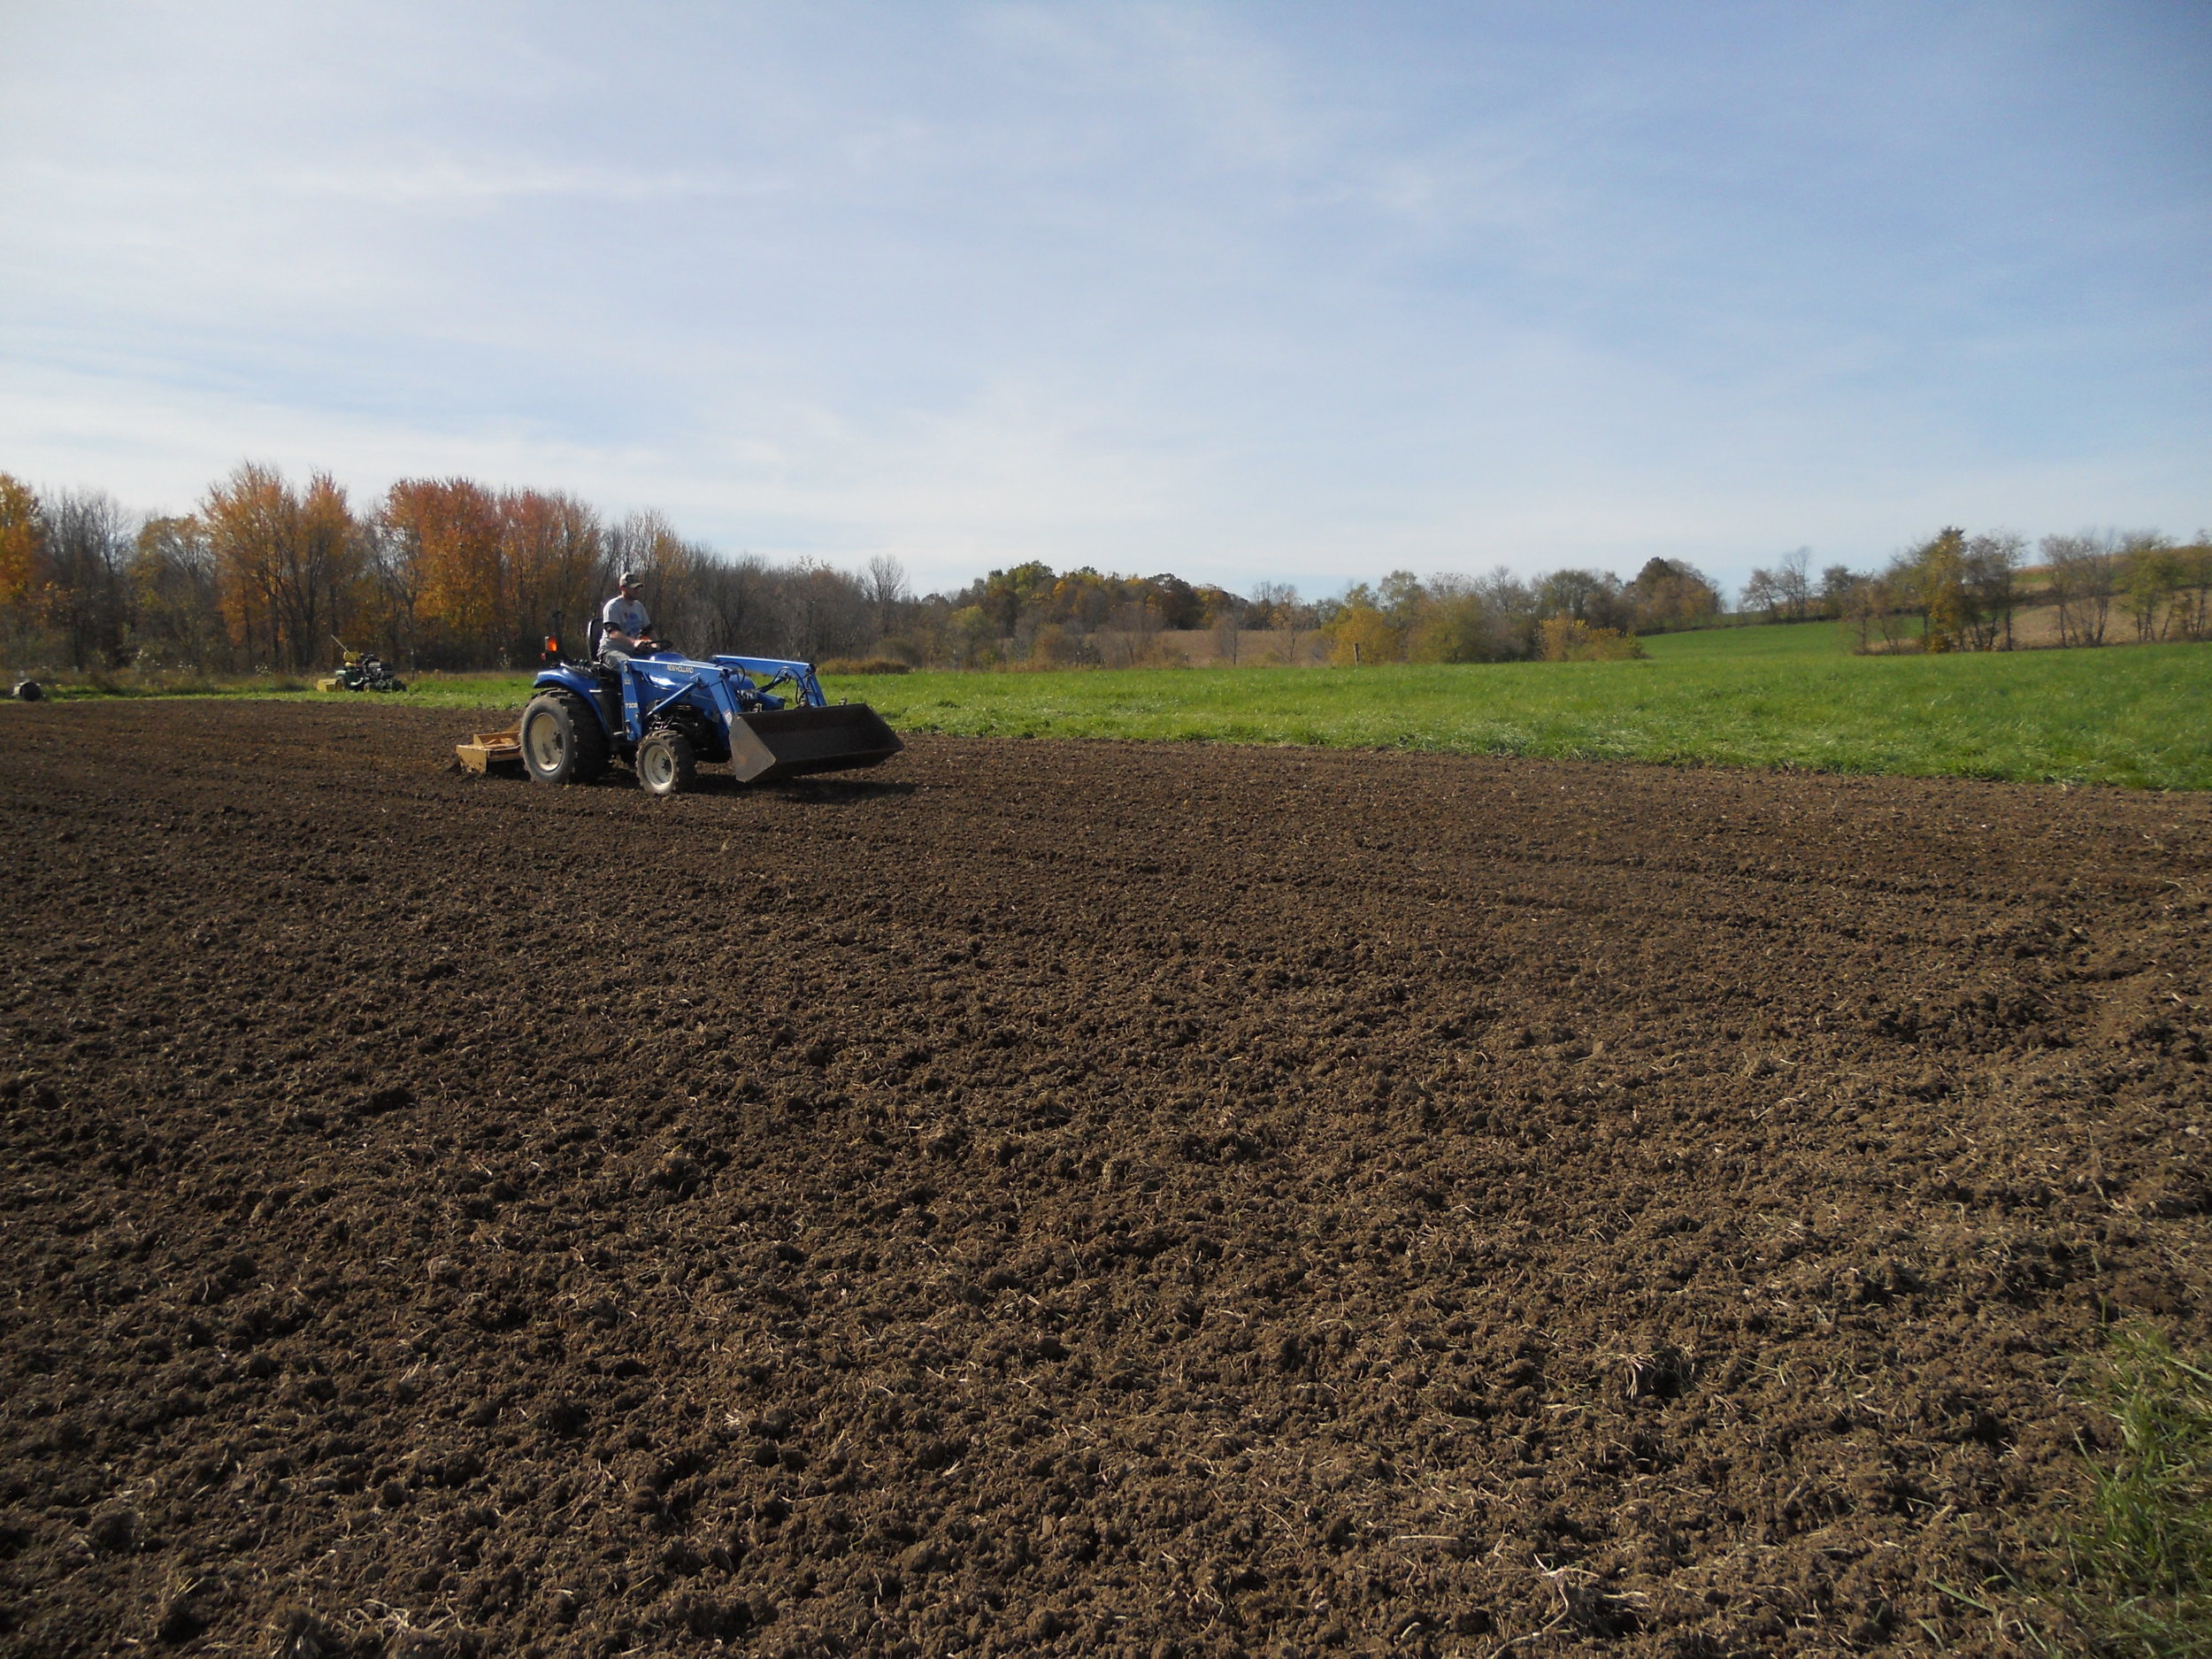 Working the ground to keep it soft for planting.